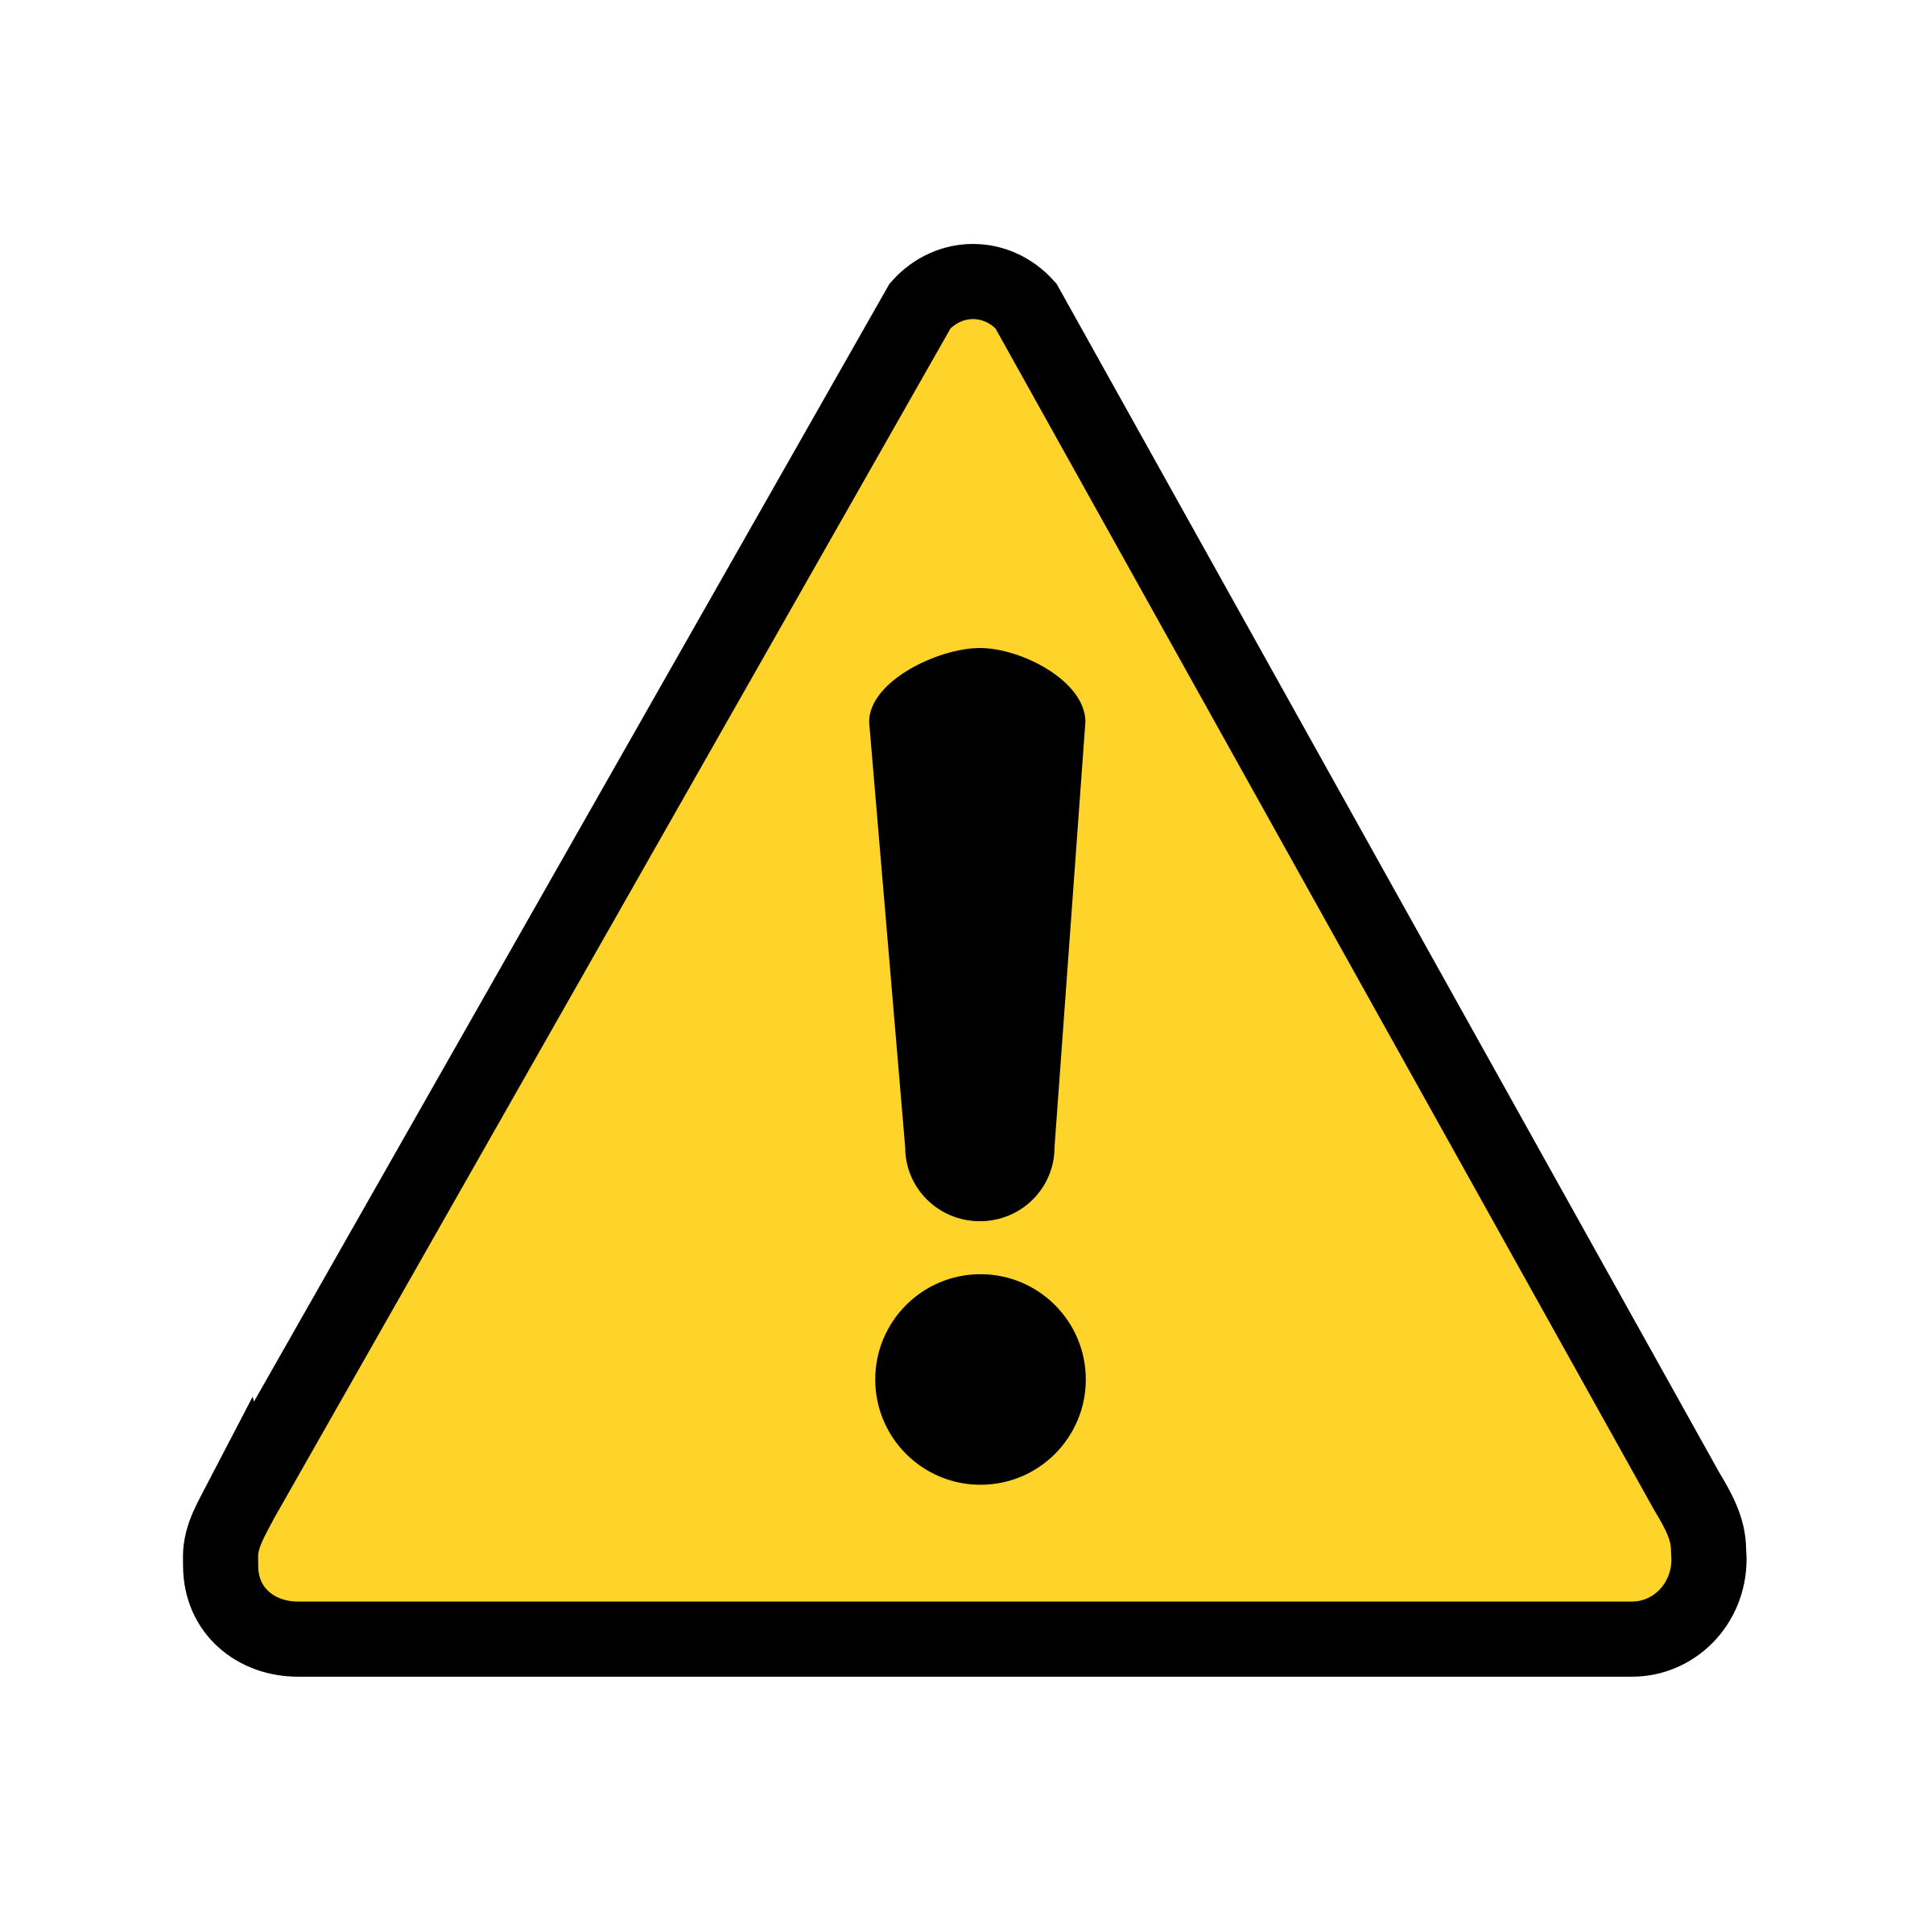 Warning Icons Download Png Transparent Background Free Download 2766 Freeiconspng